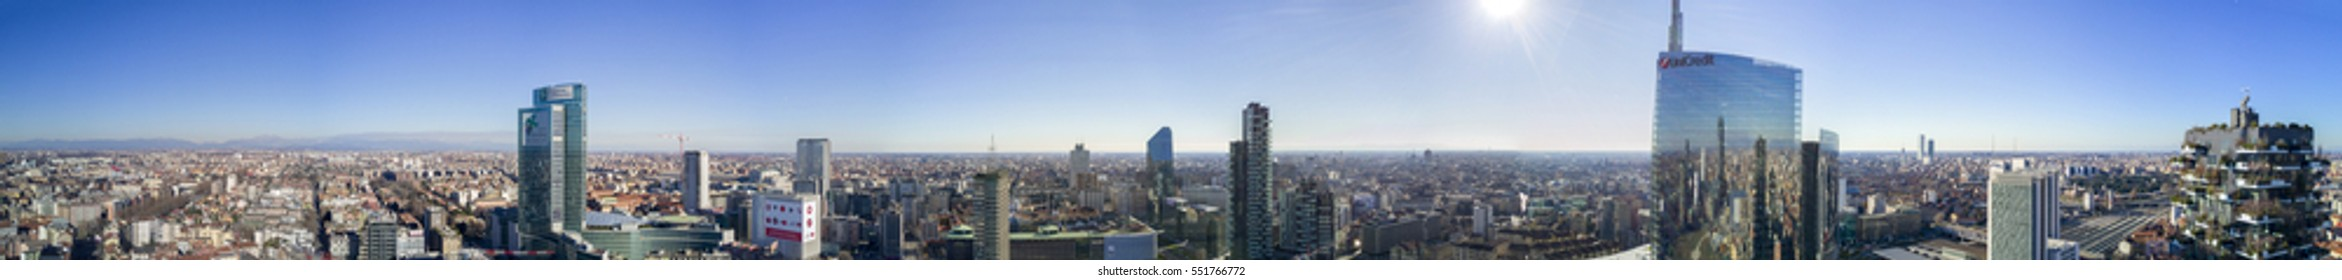 Aerial view of 360 degrees of the center of Milan, Vertical Forest, Unicredit Tower, Palazzo Lombardia, Torre Solaria, Milan, Porta Nuova residences and skyscrapers, Italy, Jan. 6, 2017. New Skyline